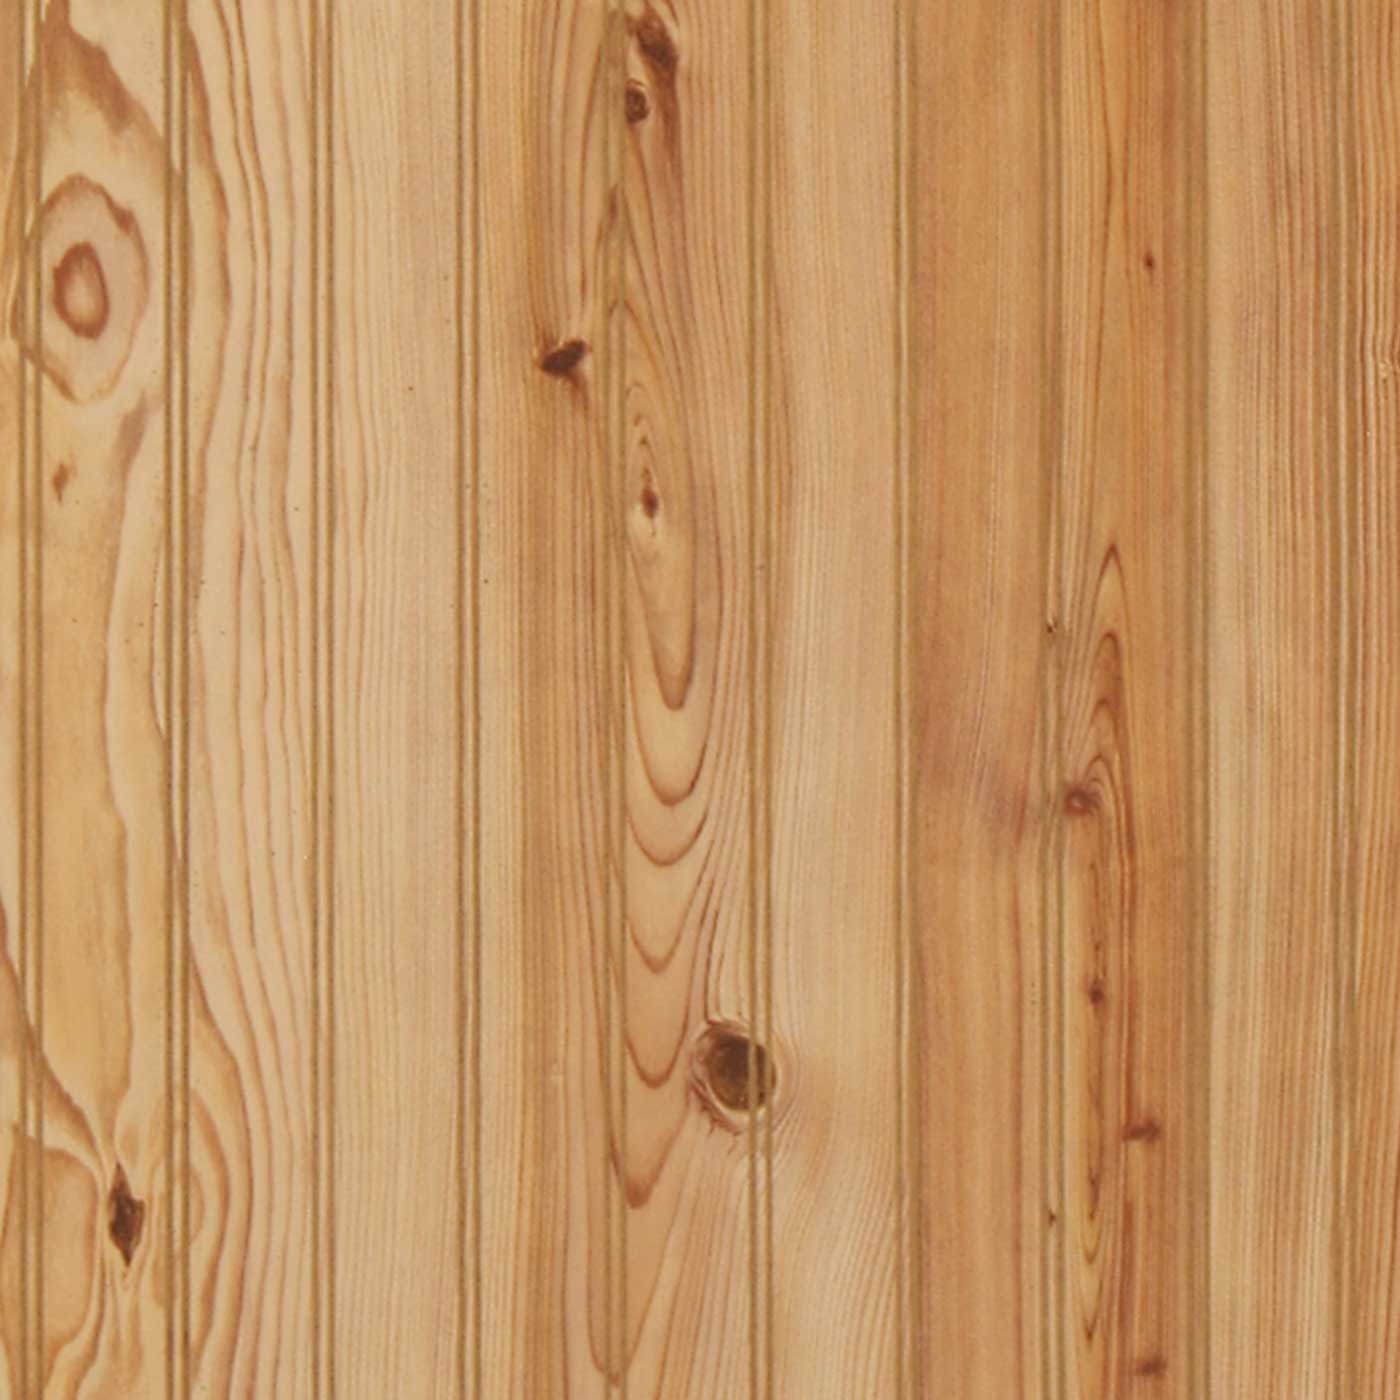 Detailed image of our 4 x 8 Sheets of Plywood paneling with a pine pattern  laminate - Beaded Wood Paneling 4 X 8 Wall Panels Plywood